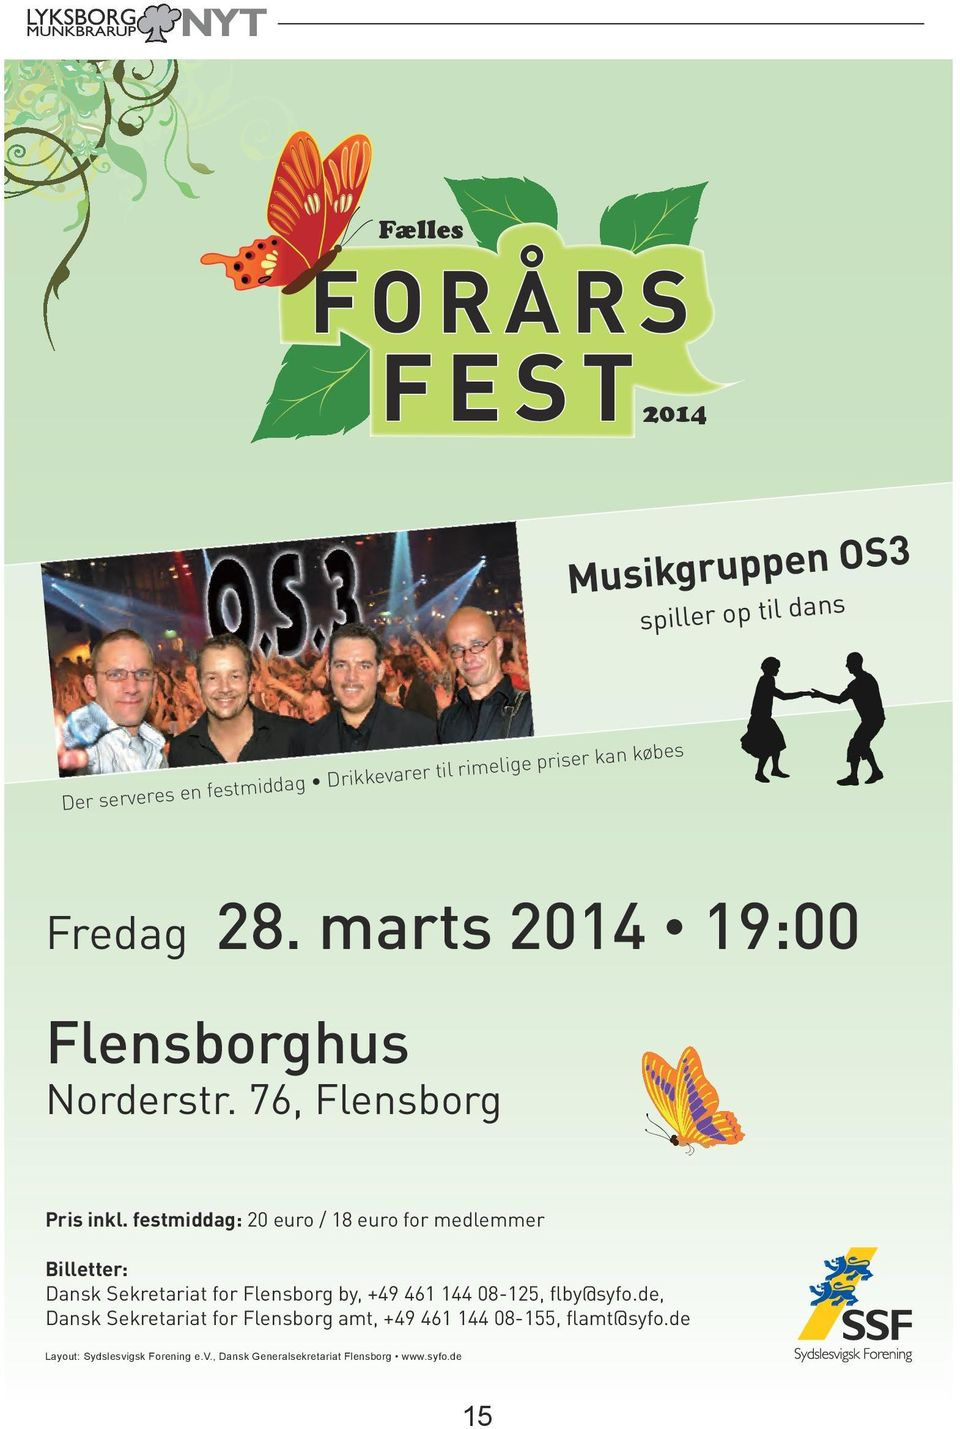 festmiddag: 20 euro / 18 euro for medlemmer Billetter: Dansk Sekretariat for Flensborg by, +49 461 144 08-125, flby@syfo.